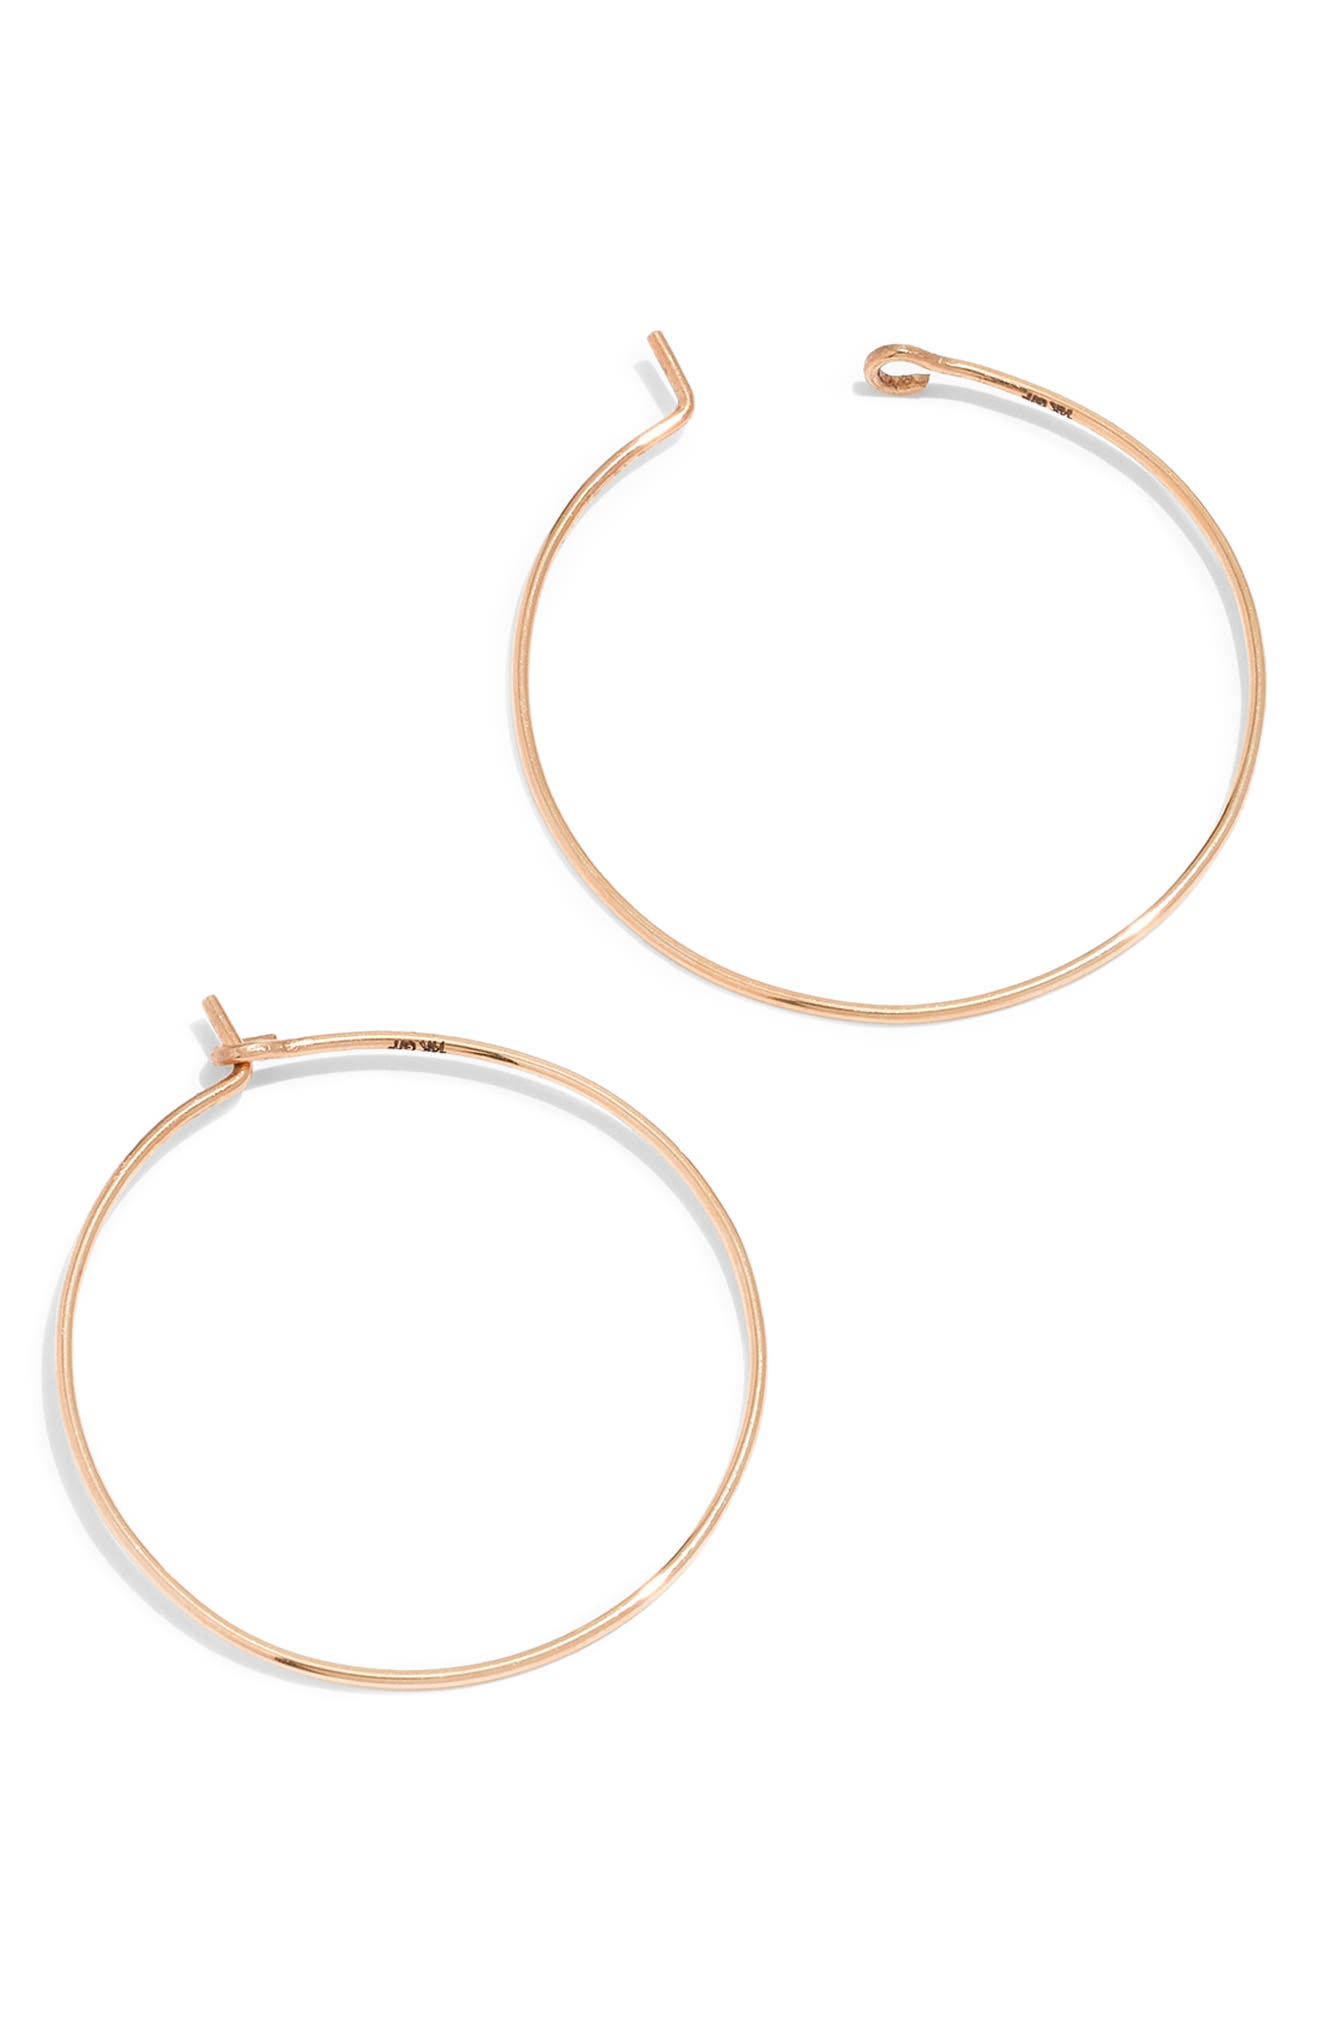 Gold-Filled Hoop Earrings,                             Main thumbnail 1, color,                             710